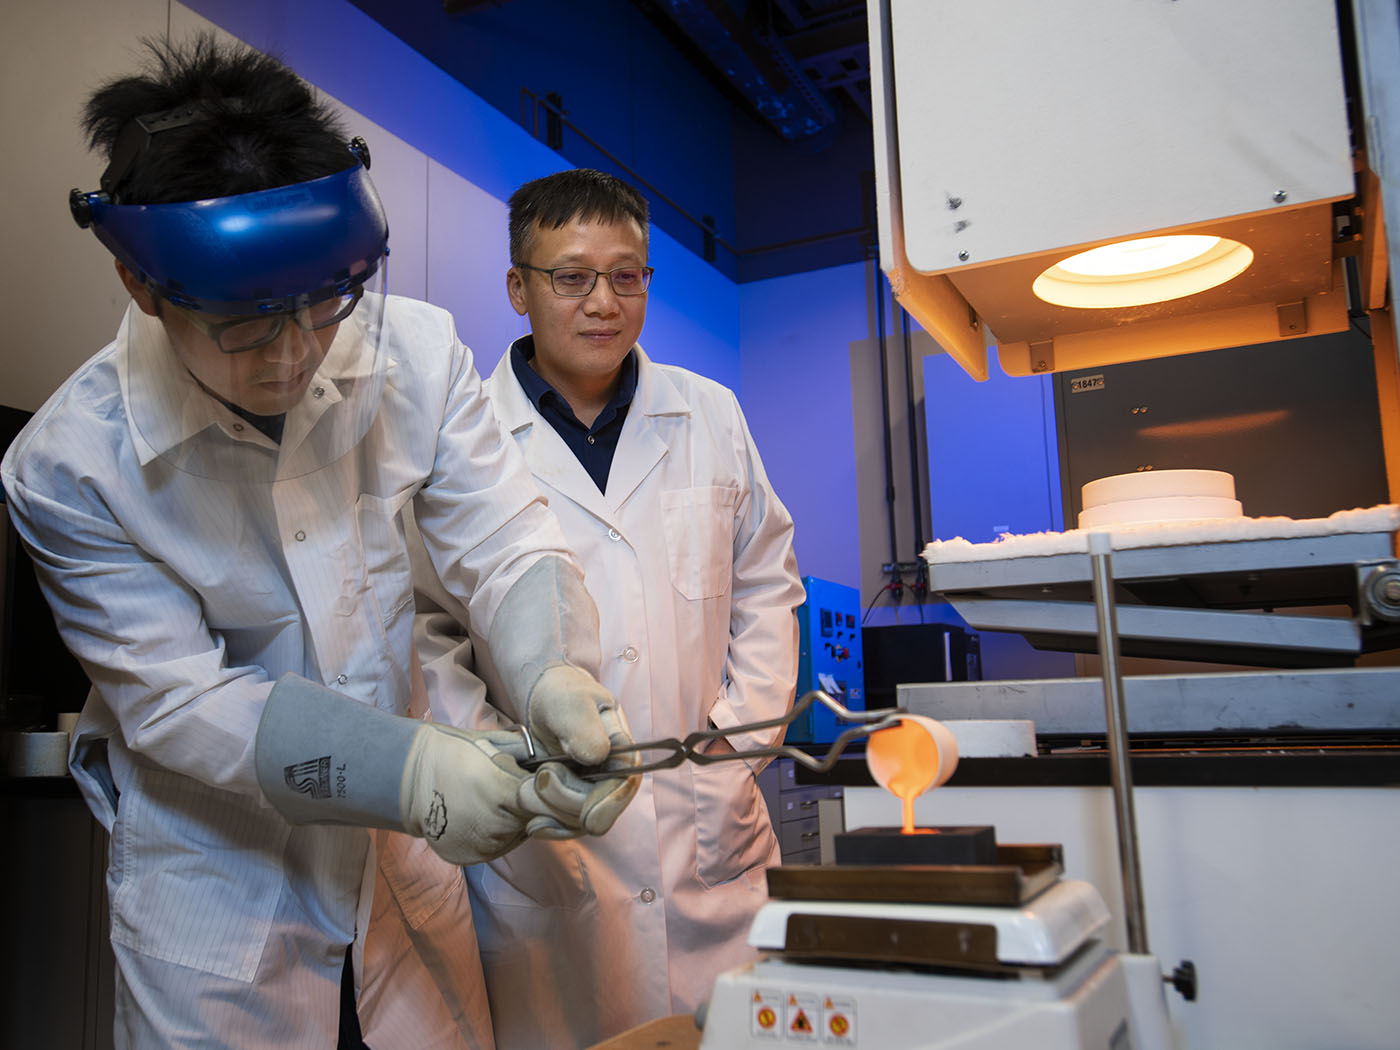 Ph.D. student Po-Hsuen Kuo pours molten glass as Professor Jincheng Du looks on.